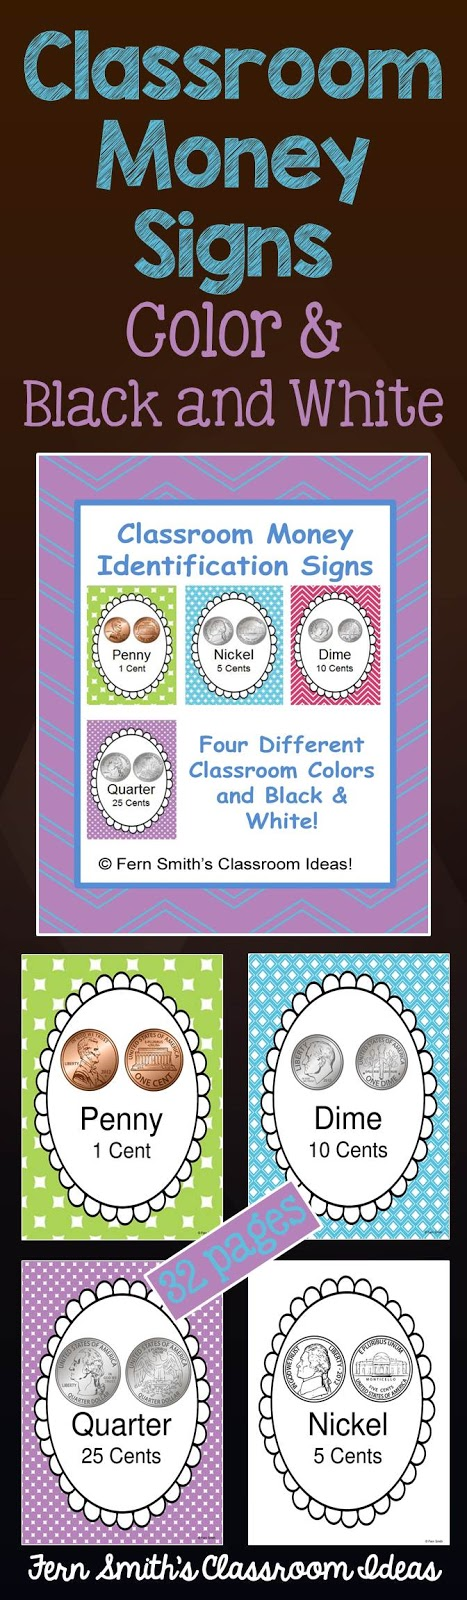 Fern Smith's Classroom Ideas Classroom Money Signs and Books at TeachersPayTeachers